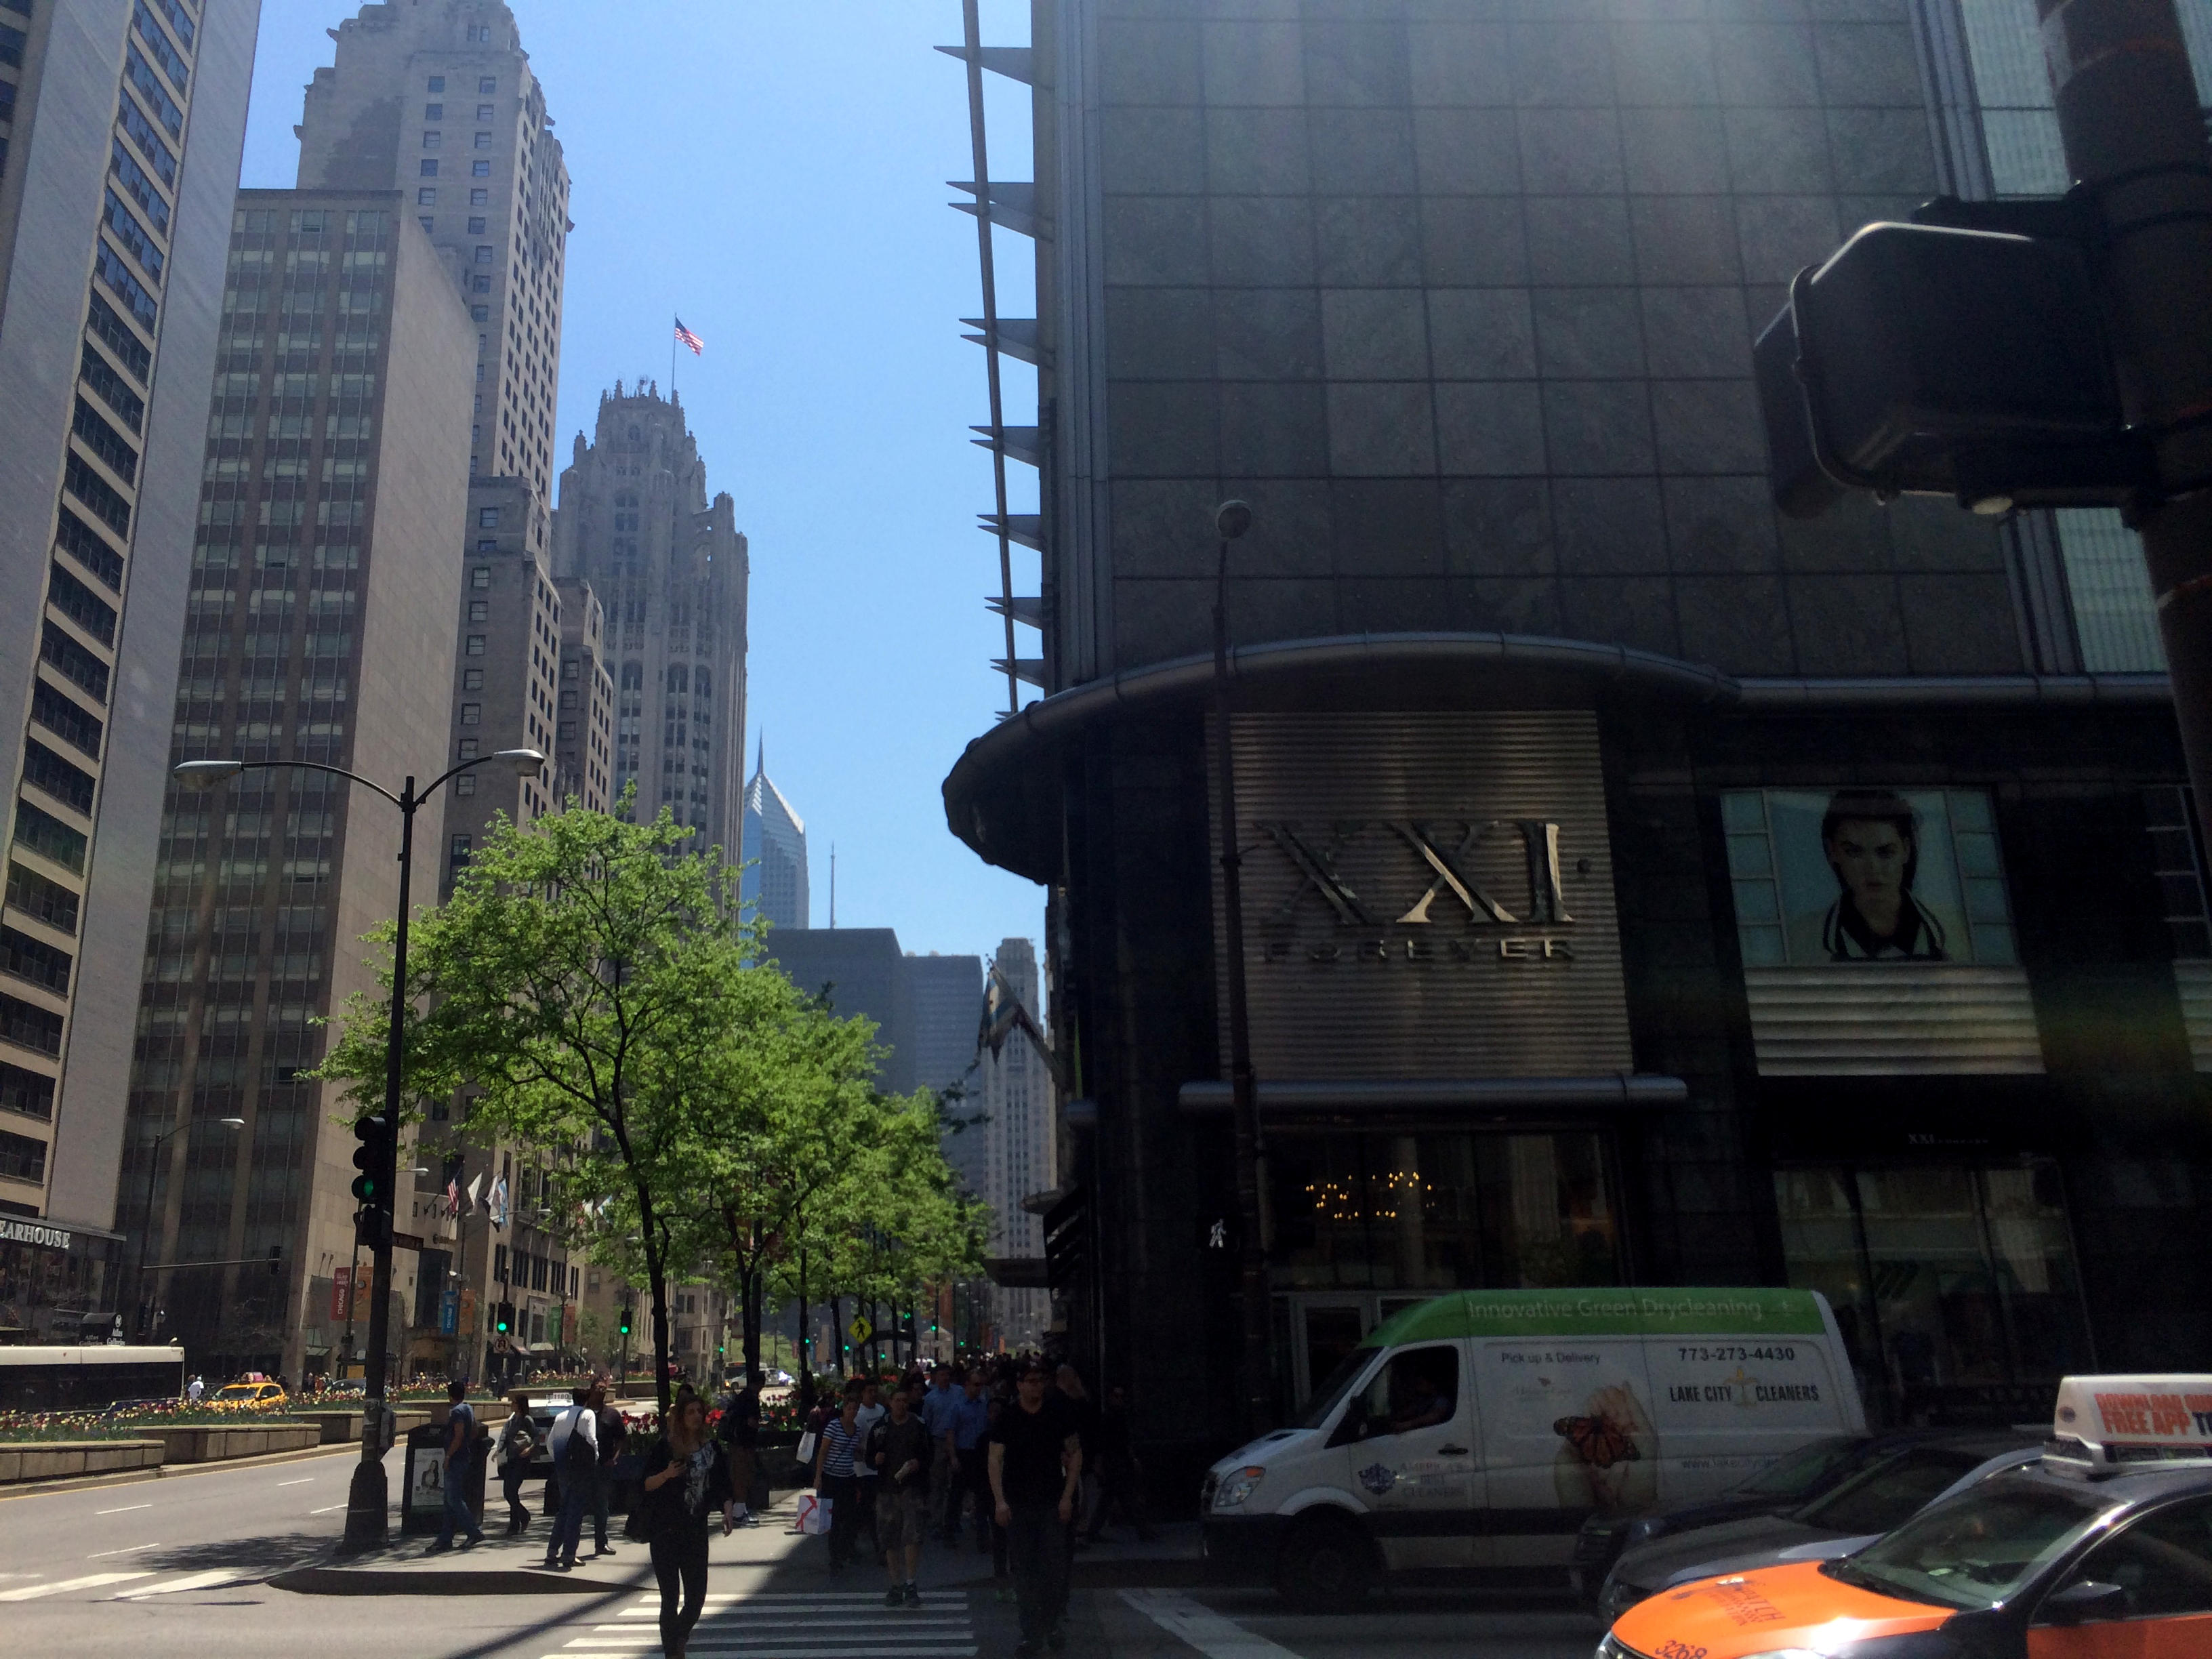 Forever 21 (540 N Michigan Avenue) – Magnificent Mile